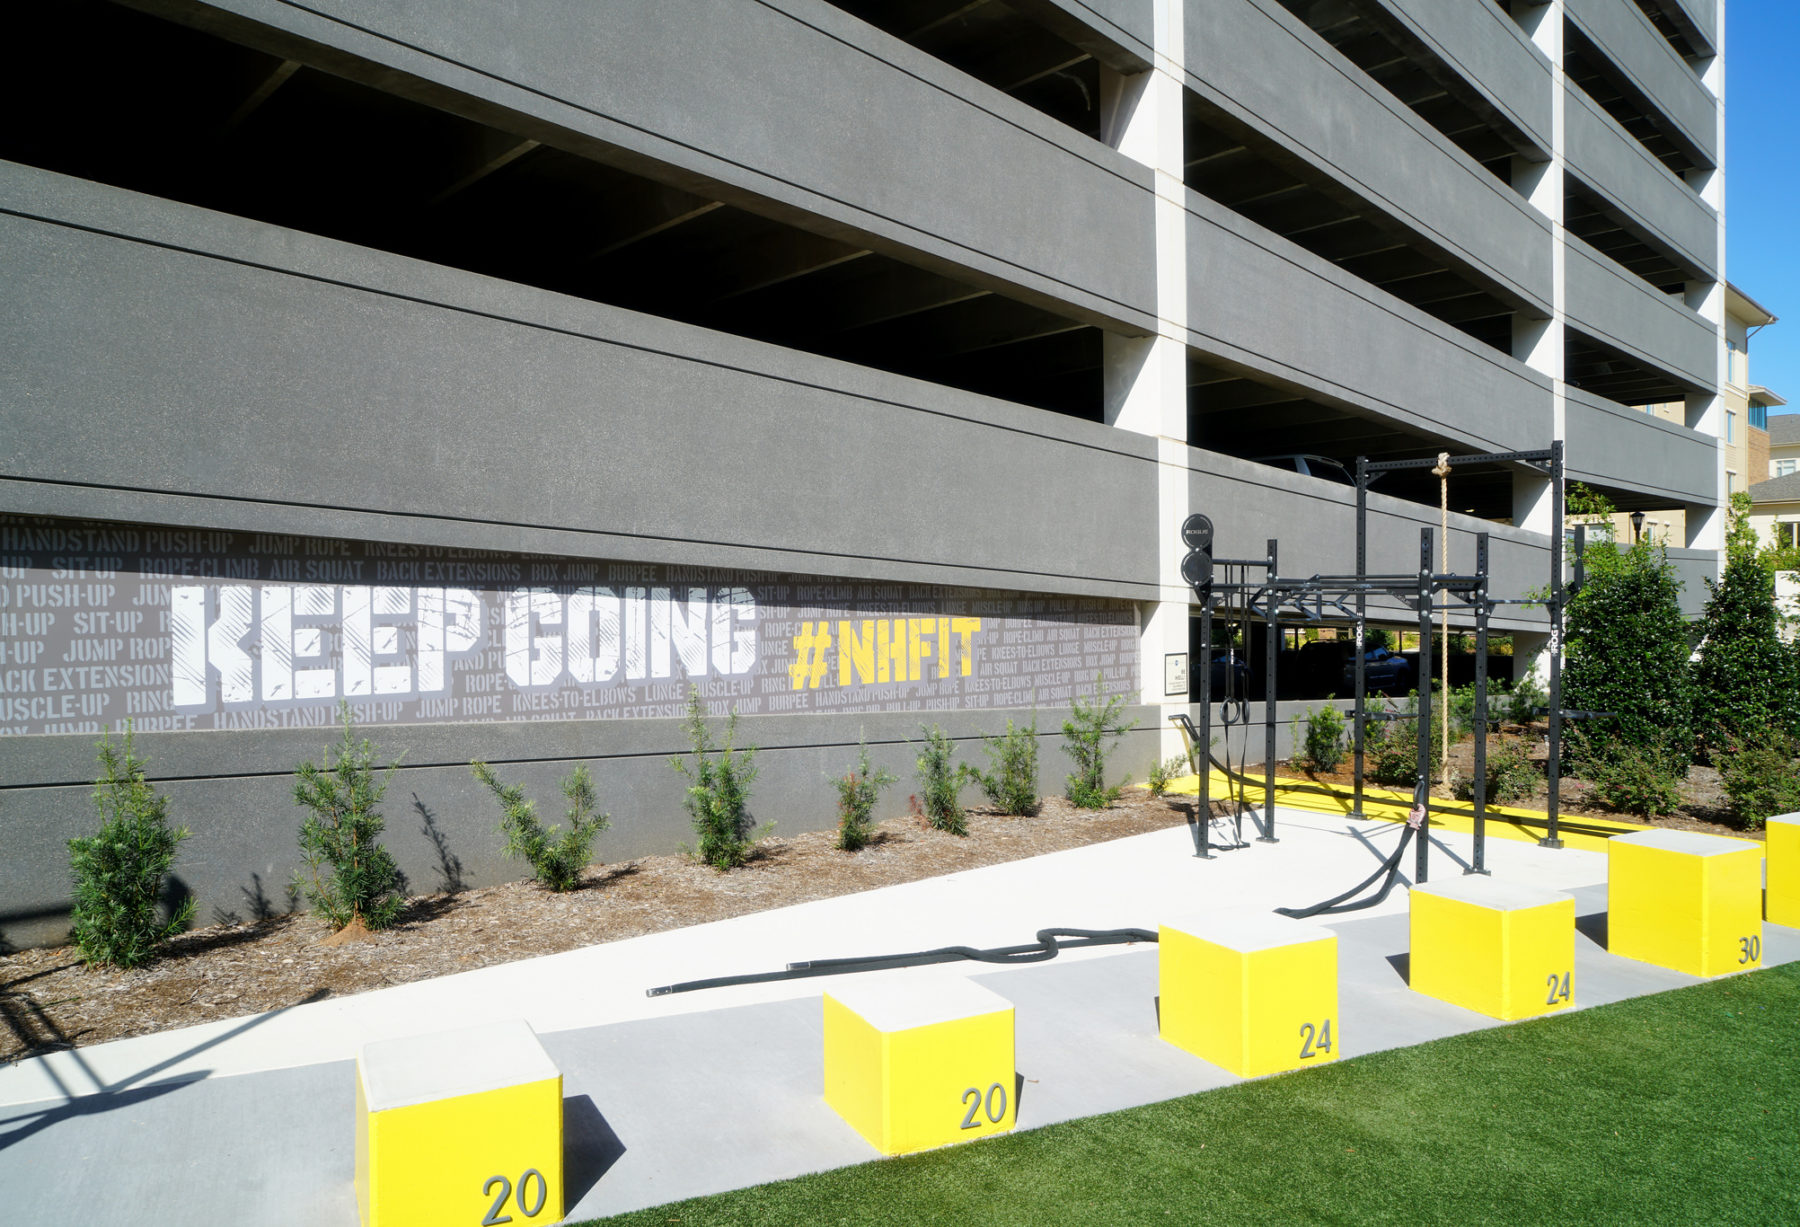 Crossfit Station at Midtown Plaza